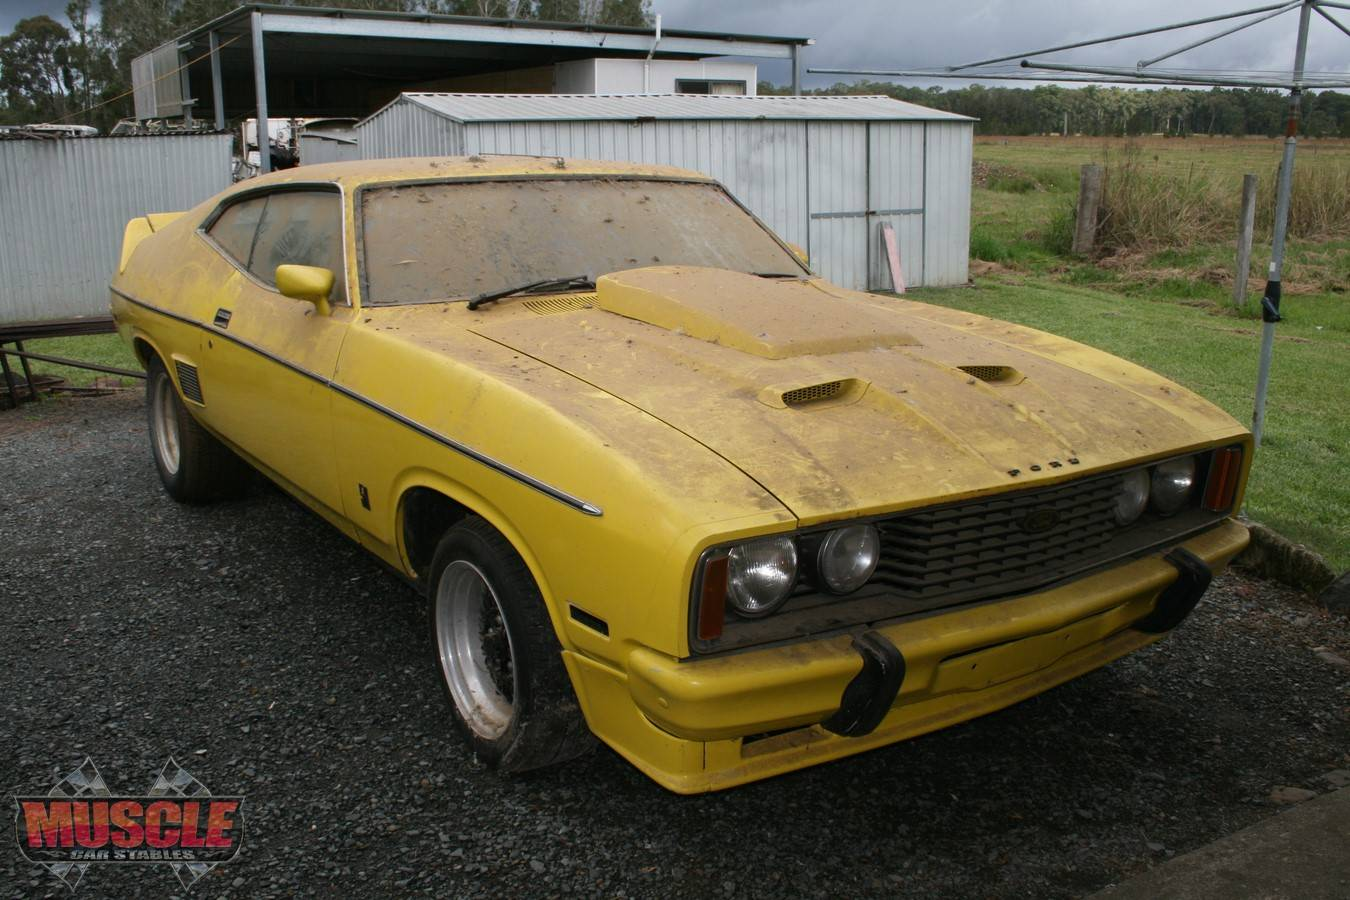 1977 XC Falcon GS HARDTOP HOMOLOGATION SPECIAL! | Muscle Car Stables